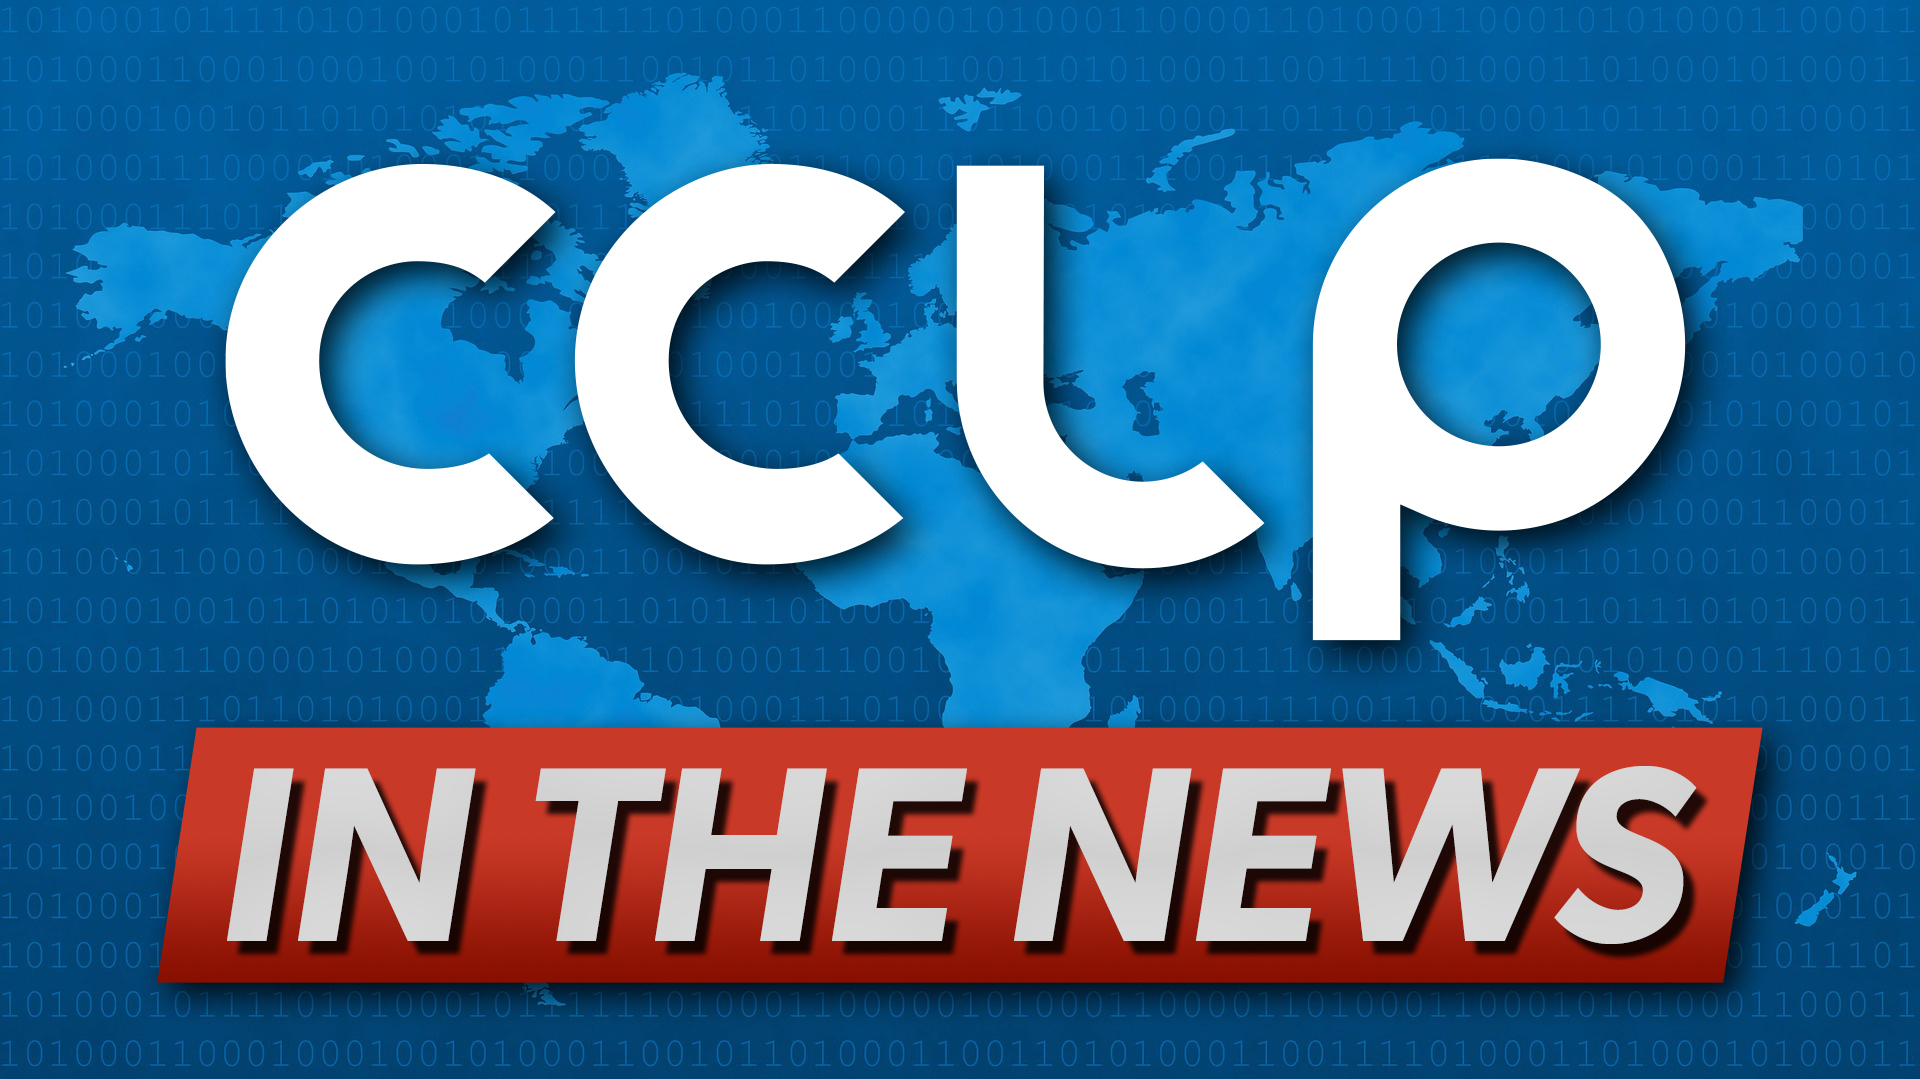 CCLP in the news